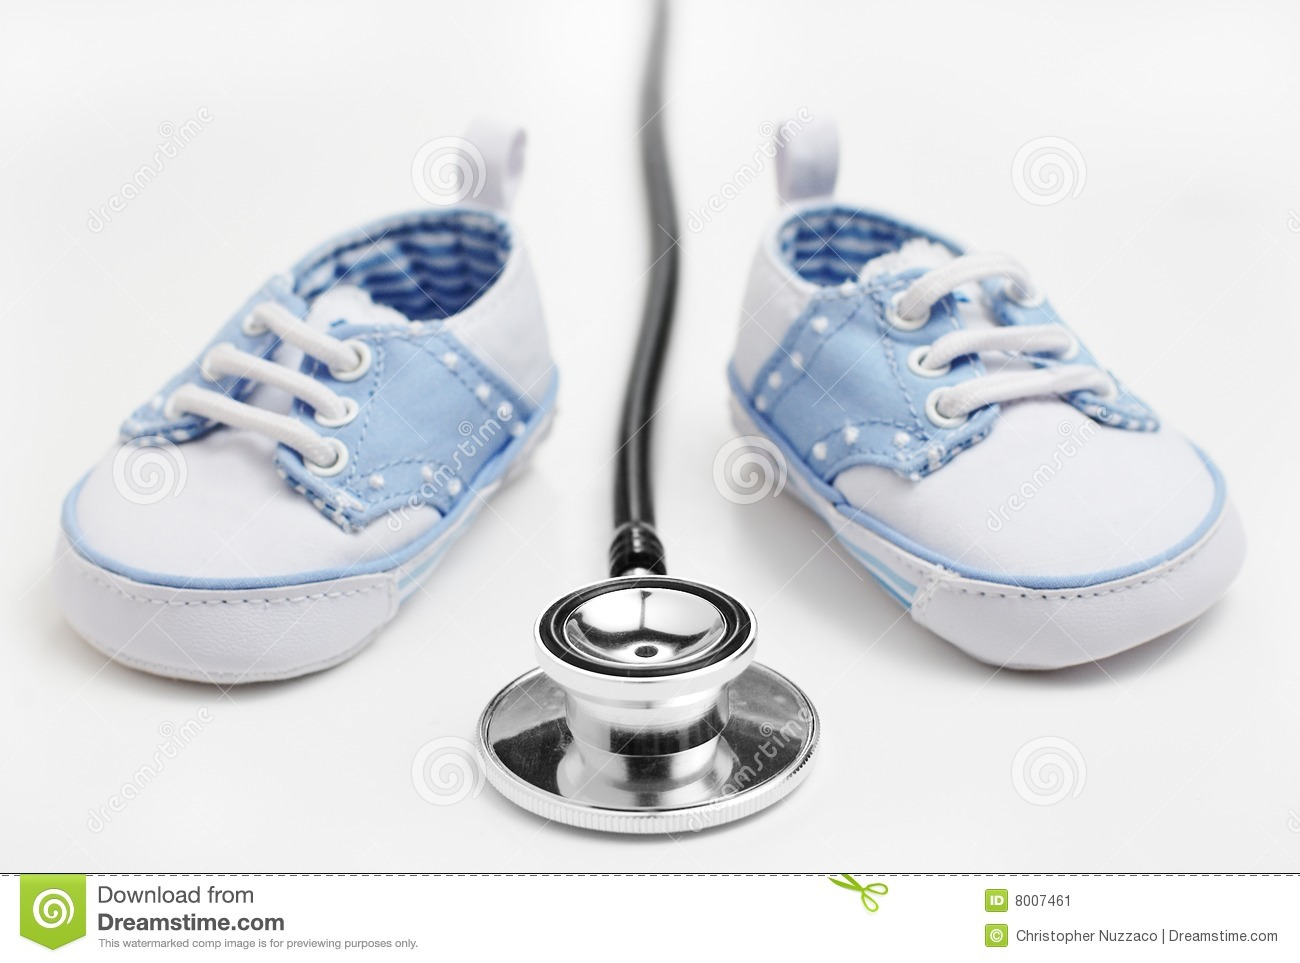 Viewing Gallery For - Pediatrician Tools Clip Art